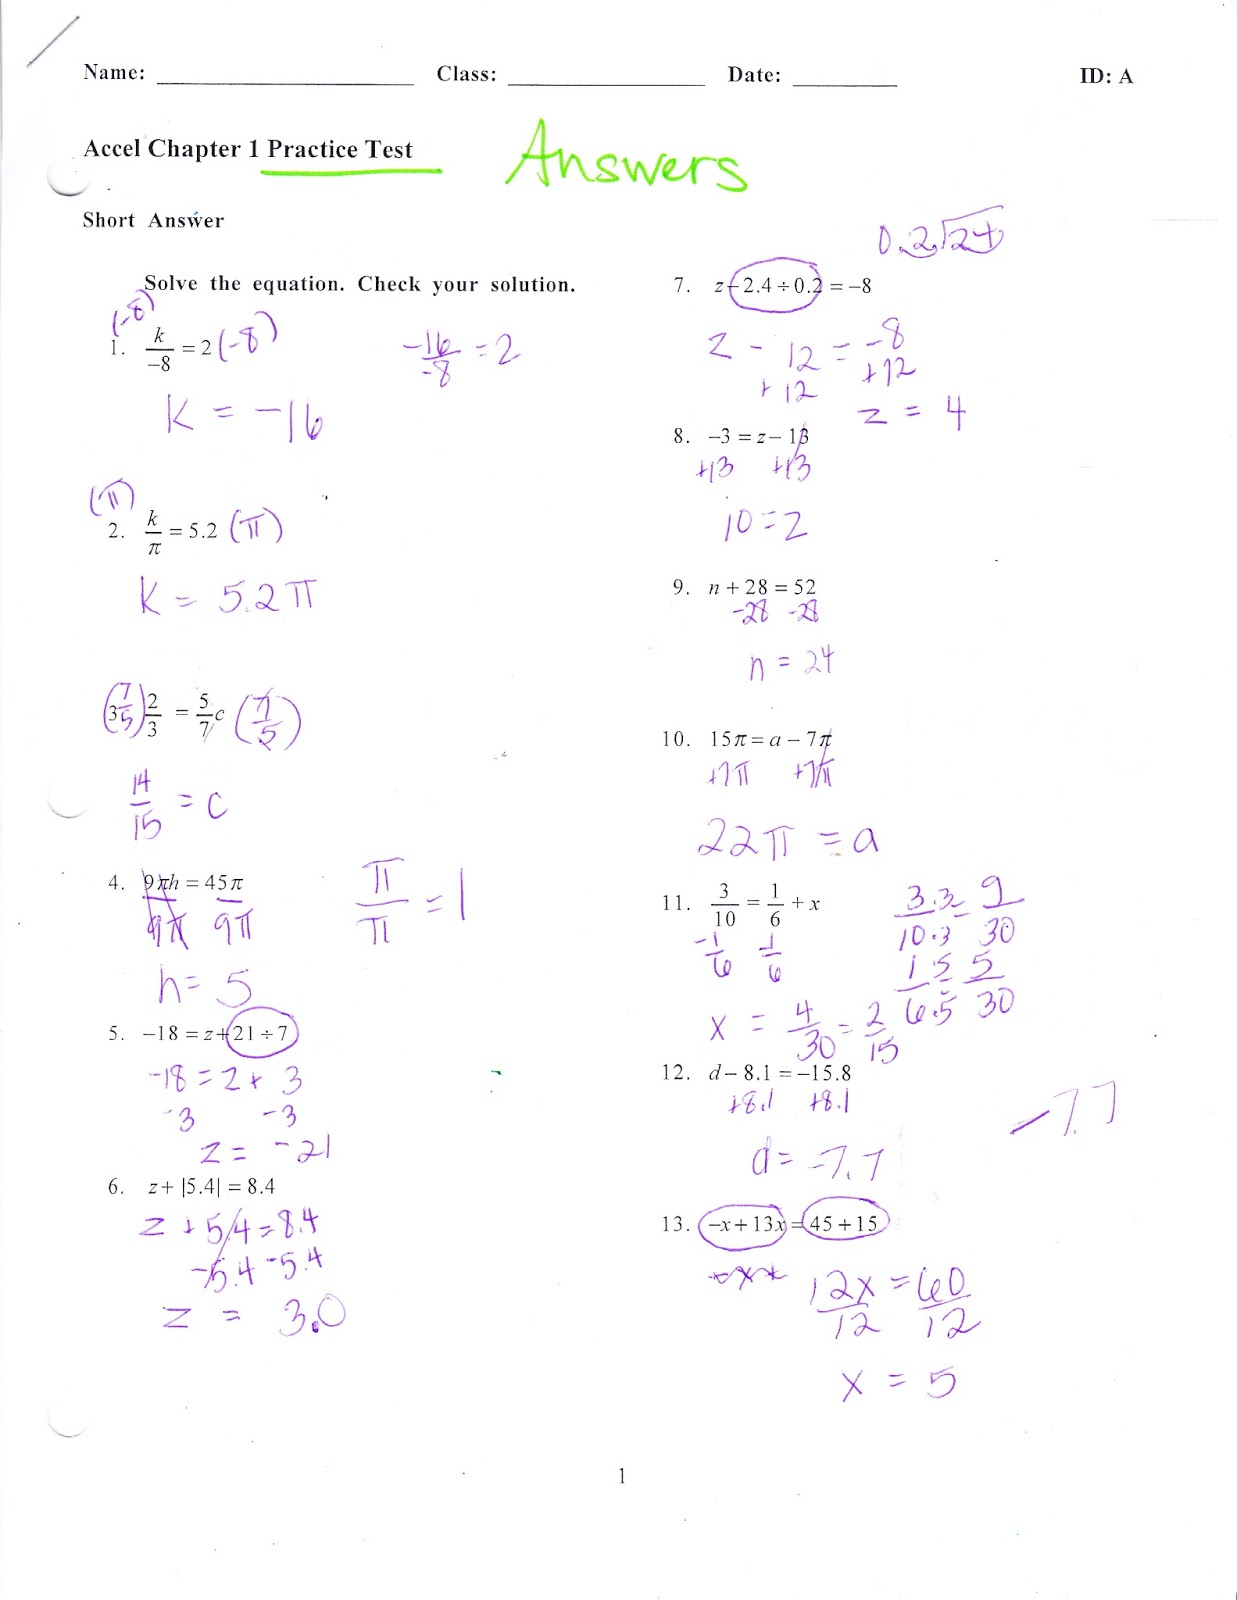 Ms. Jean's ACCEL 7 Blog: Chapter 1 Practice Test Answers